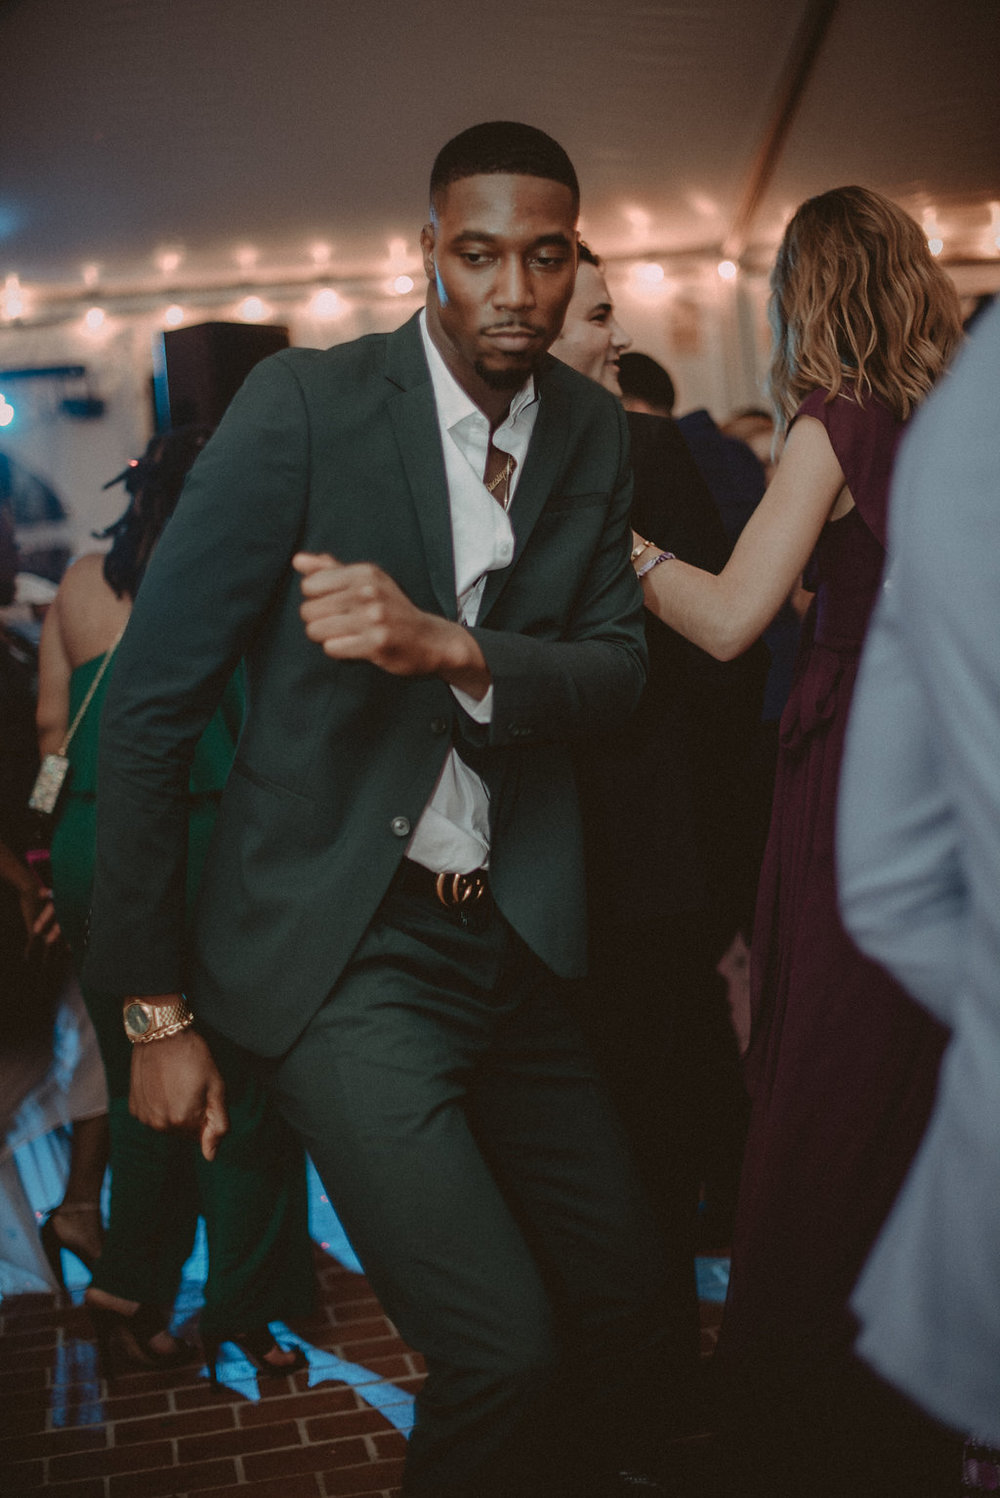 Guest dancing at wedding reception